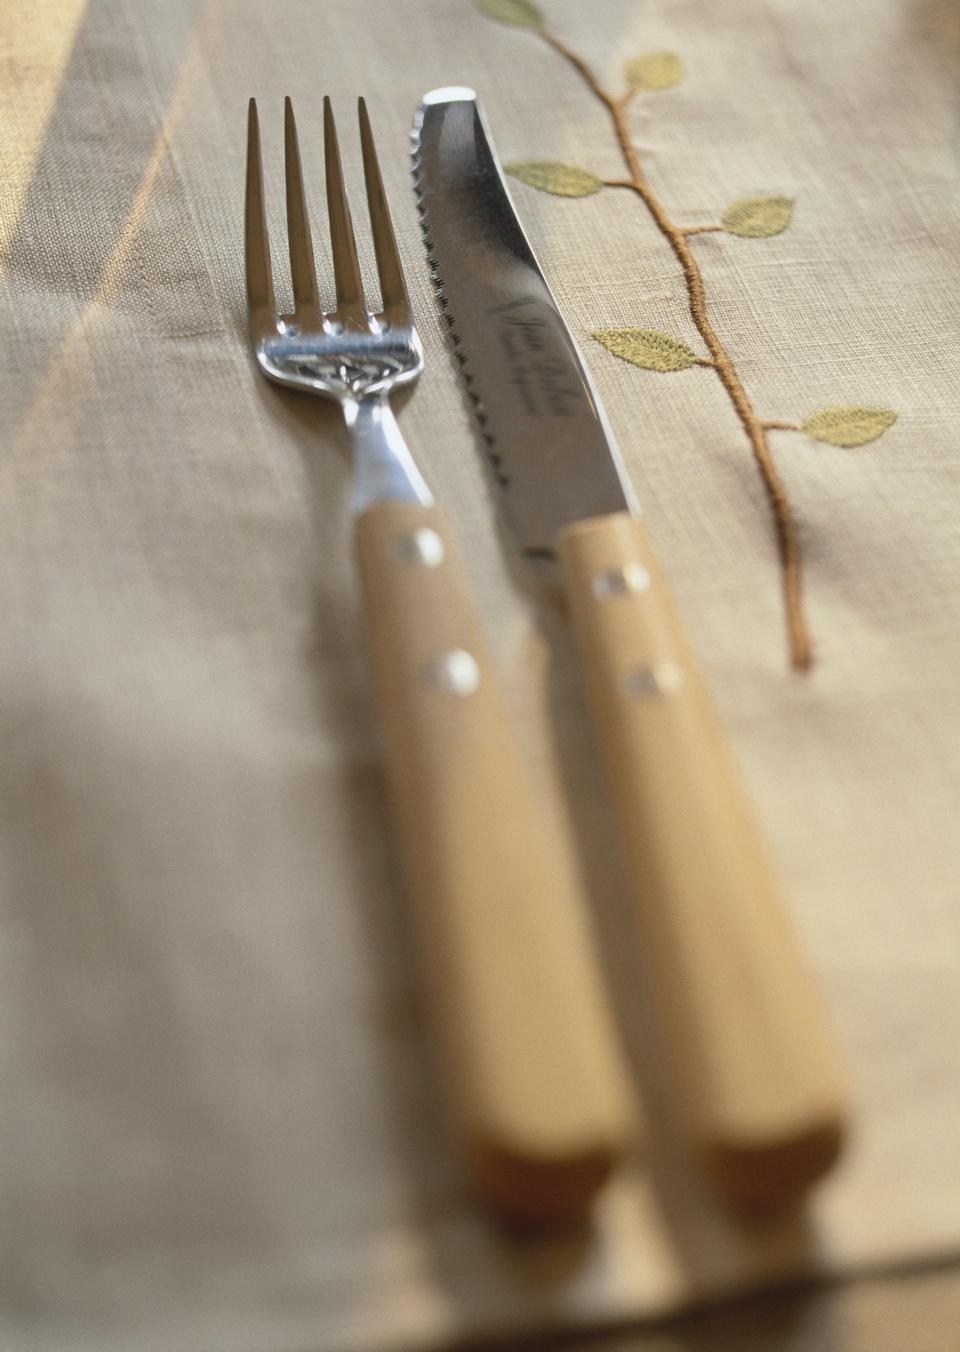 Knife and Fork on a large brown serviette